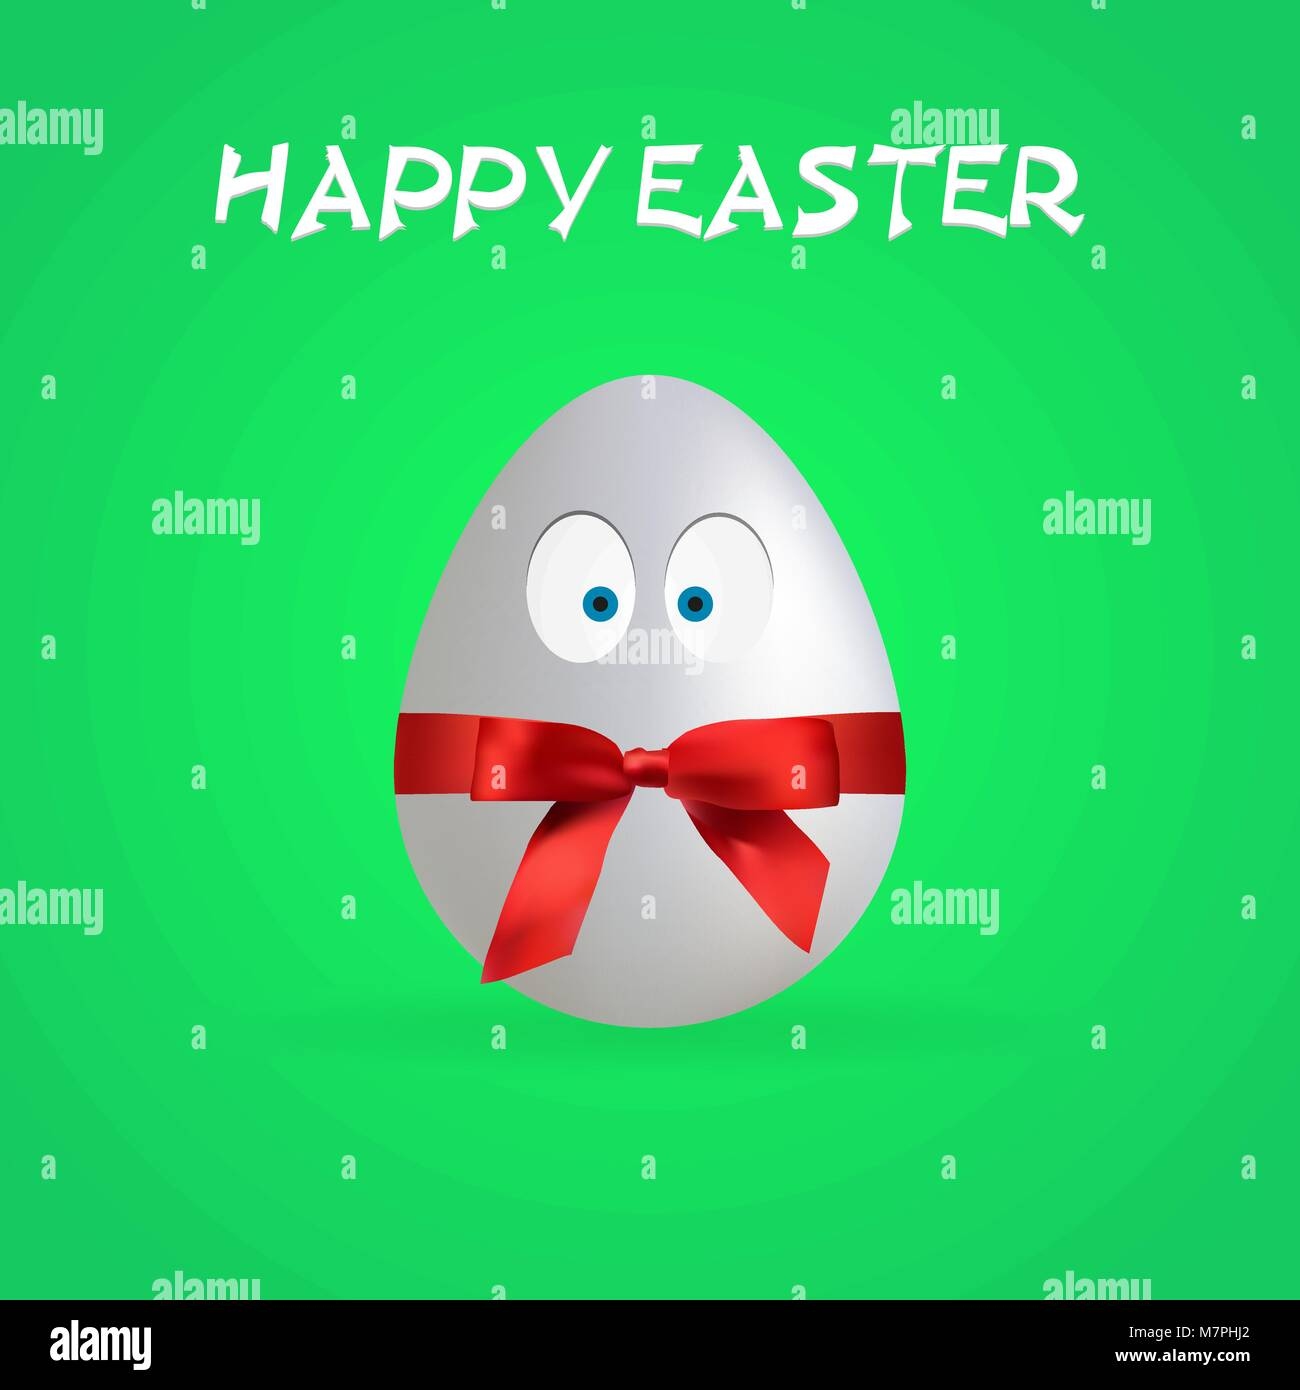 Semplice Happy Easter Egg Poster, vettore illustrazione, file EPS Immagini Stock